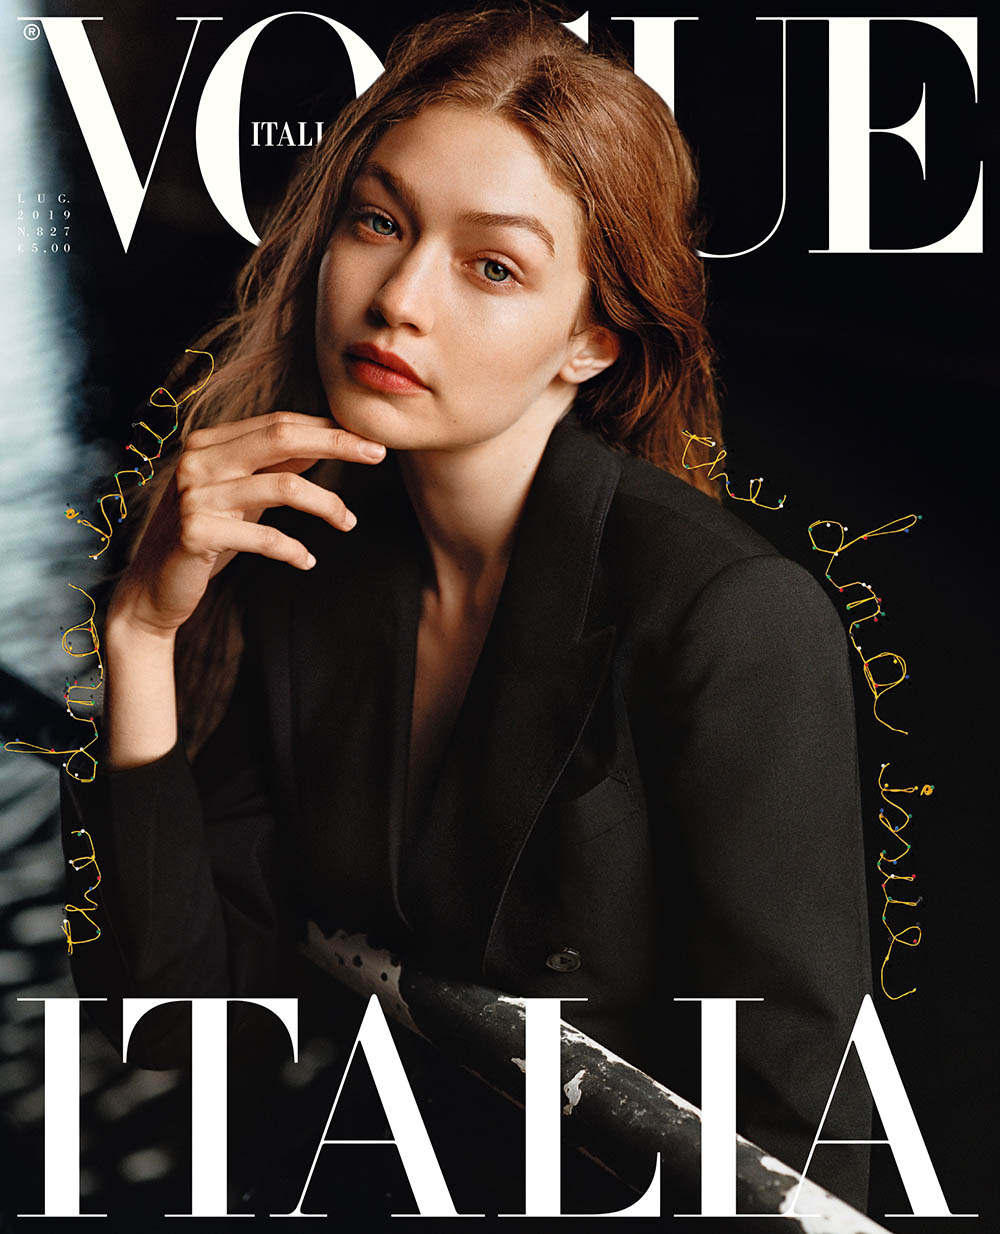 Gigi Hadid covers Vogue Italia July 2019 by Alasdair McLellan